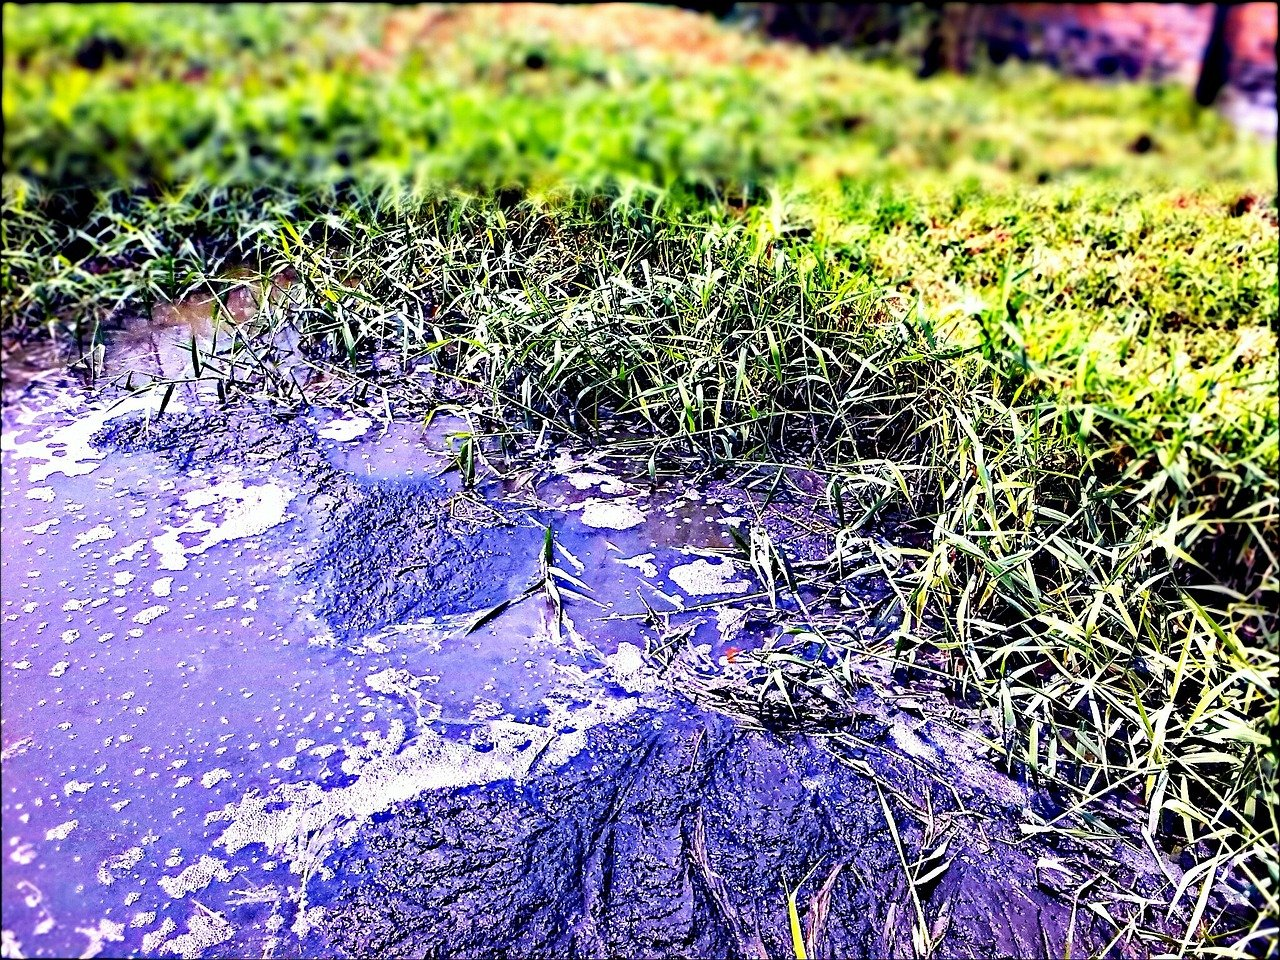 pond water polluted by sewage